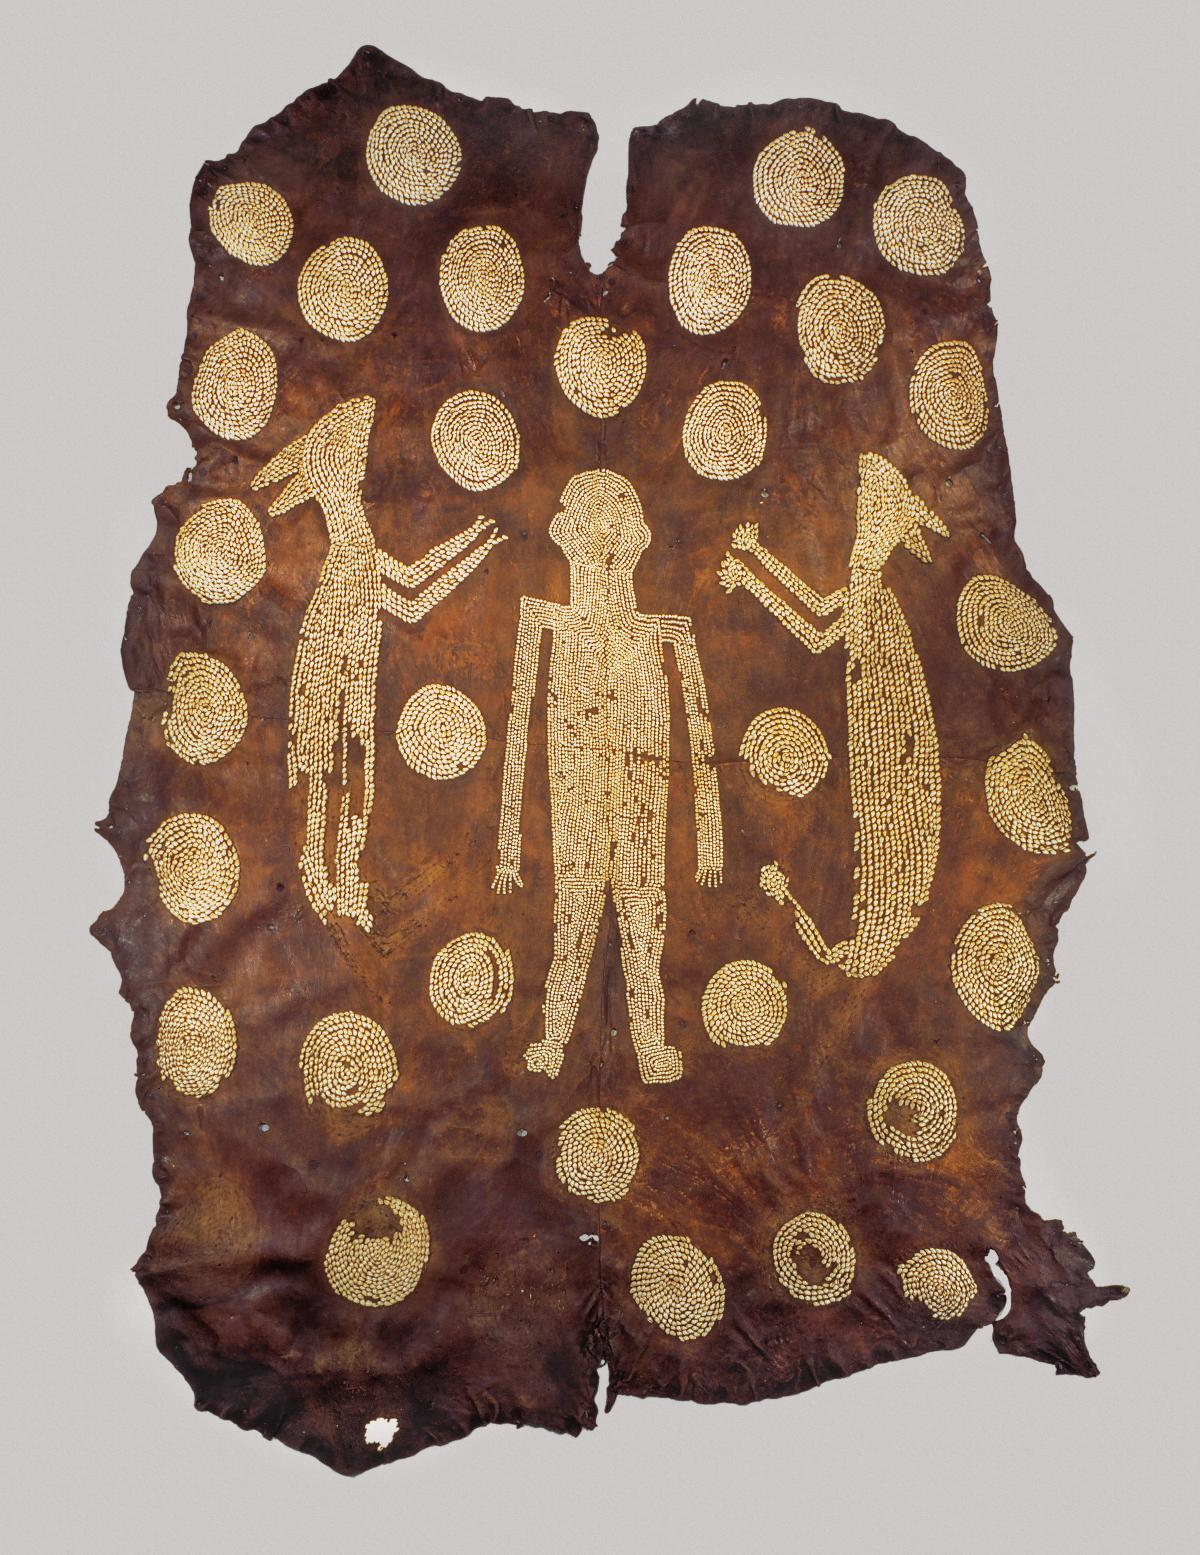 deerskin with a man carved into it